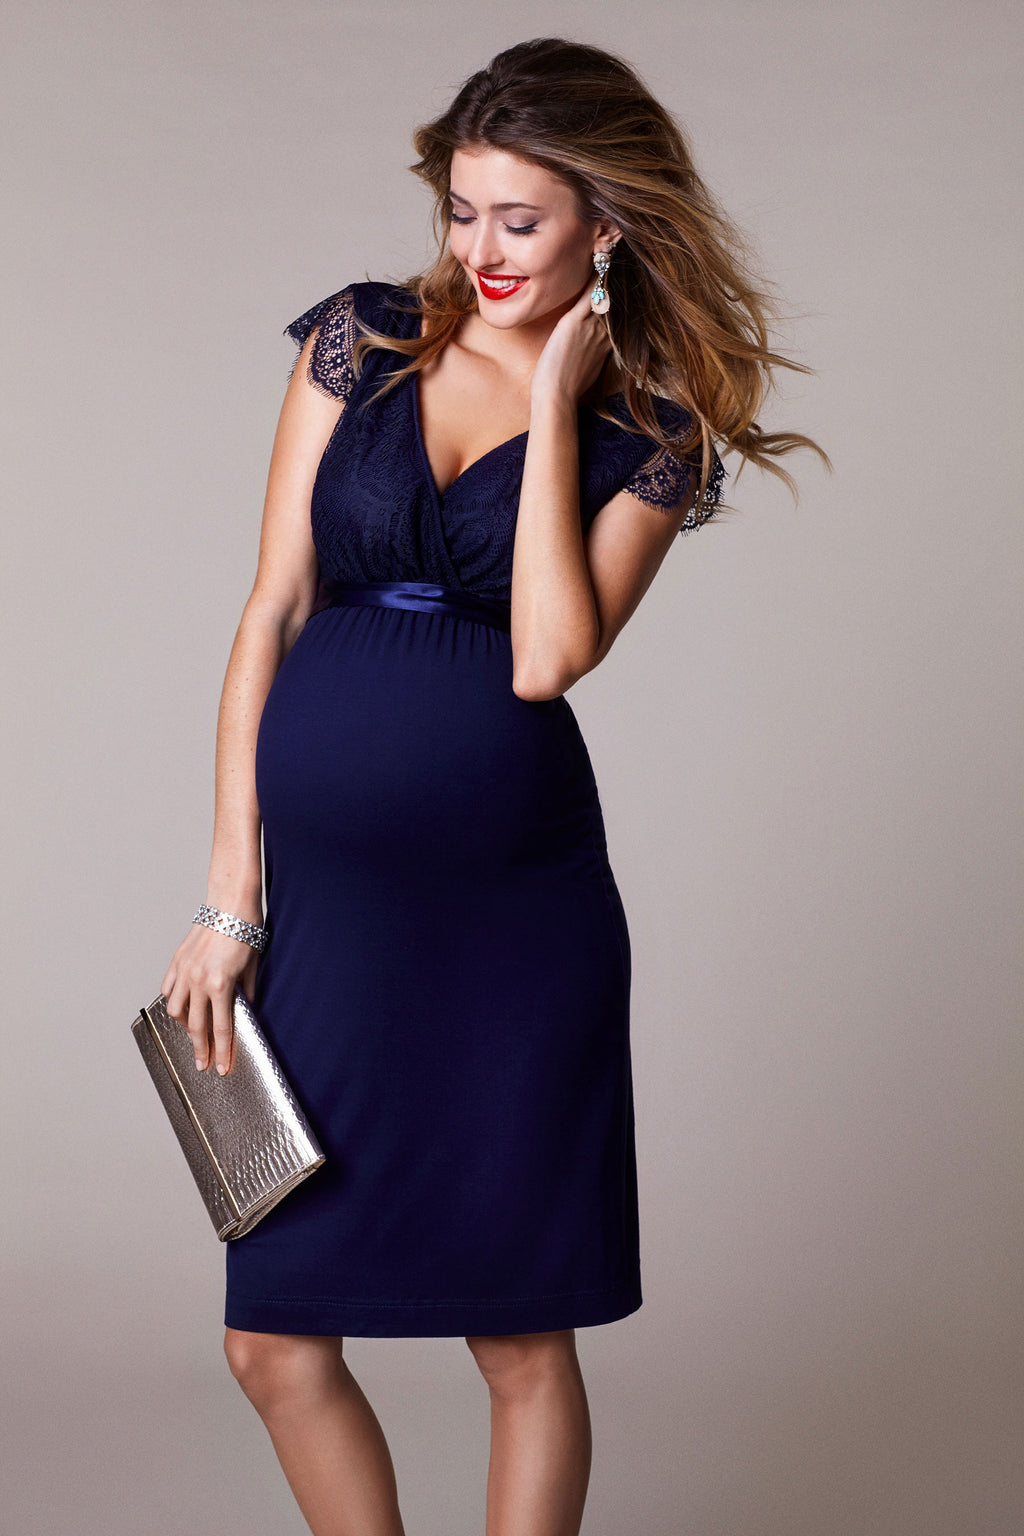 Tiffany Rose Rosa Maternity Nursing  Dress in indigo Blue - Seven Women Maternity